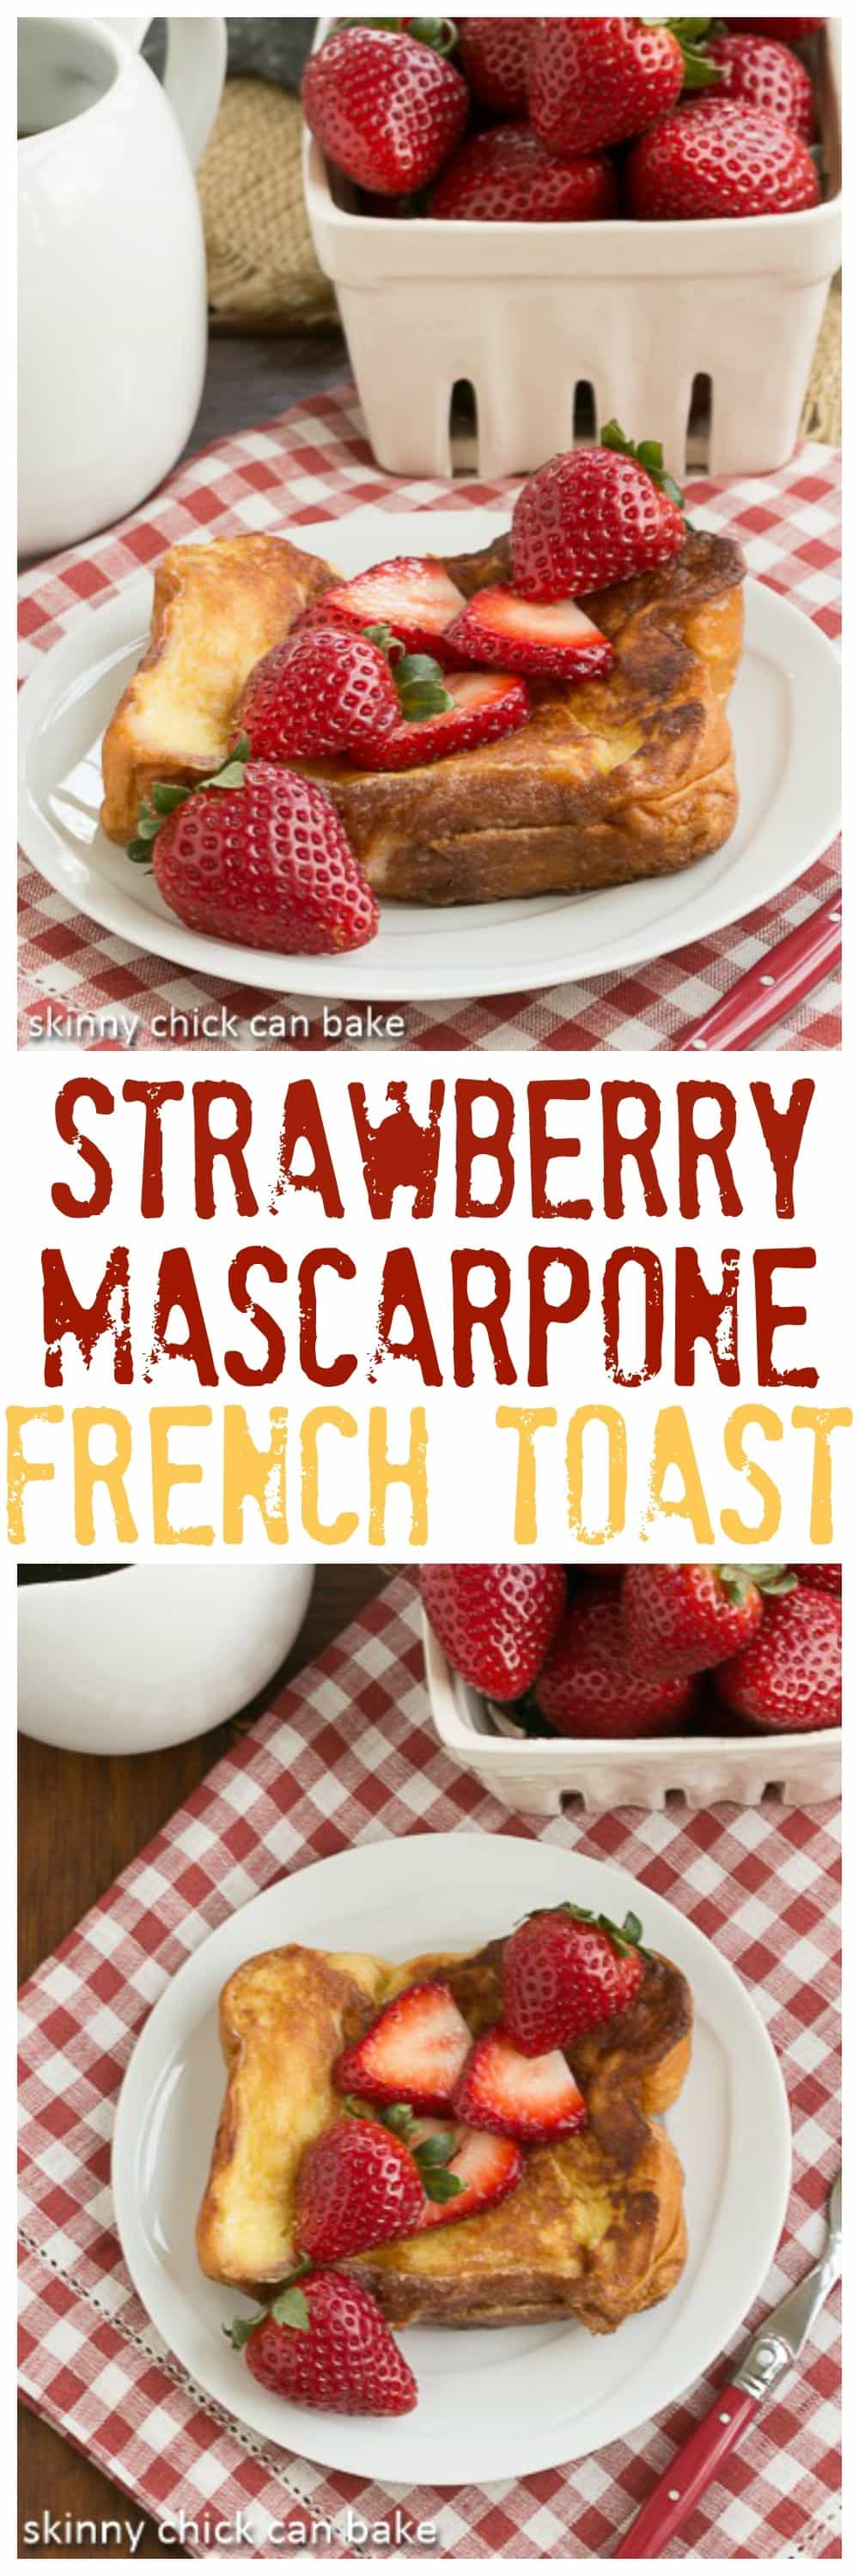 Strawberry Mascarpone Stuffed French Toast - An elegant brunch entree! #brunch #frenchtoast #strawberry #mascarpone